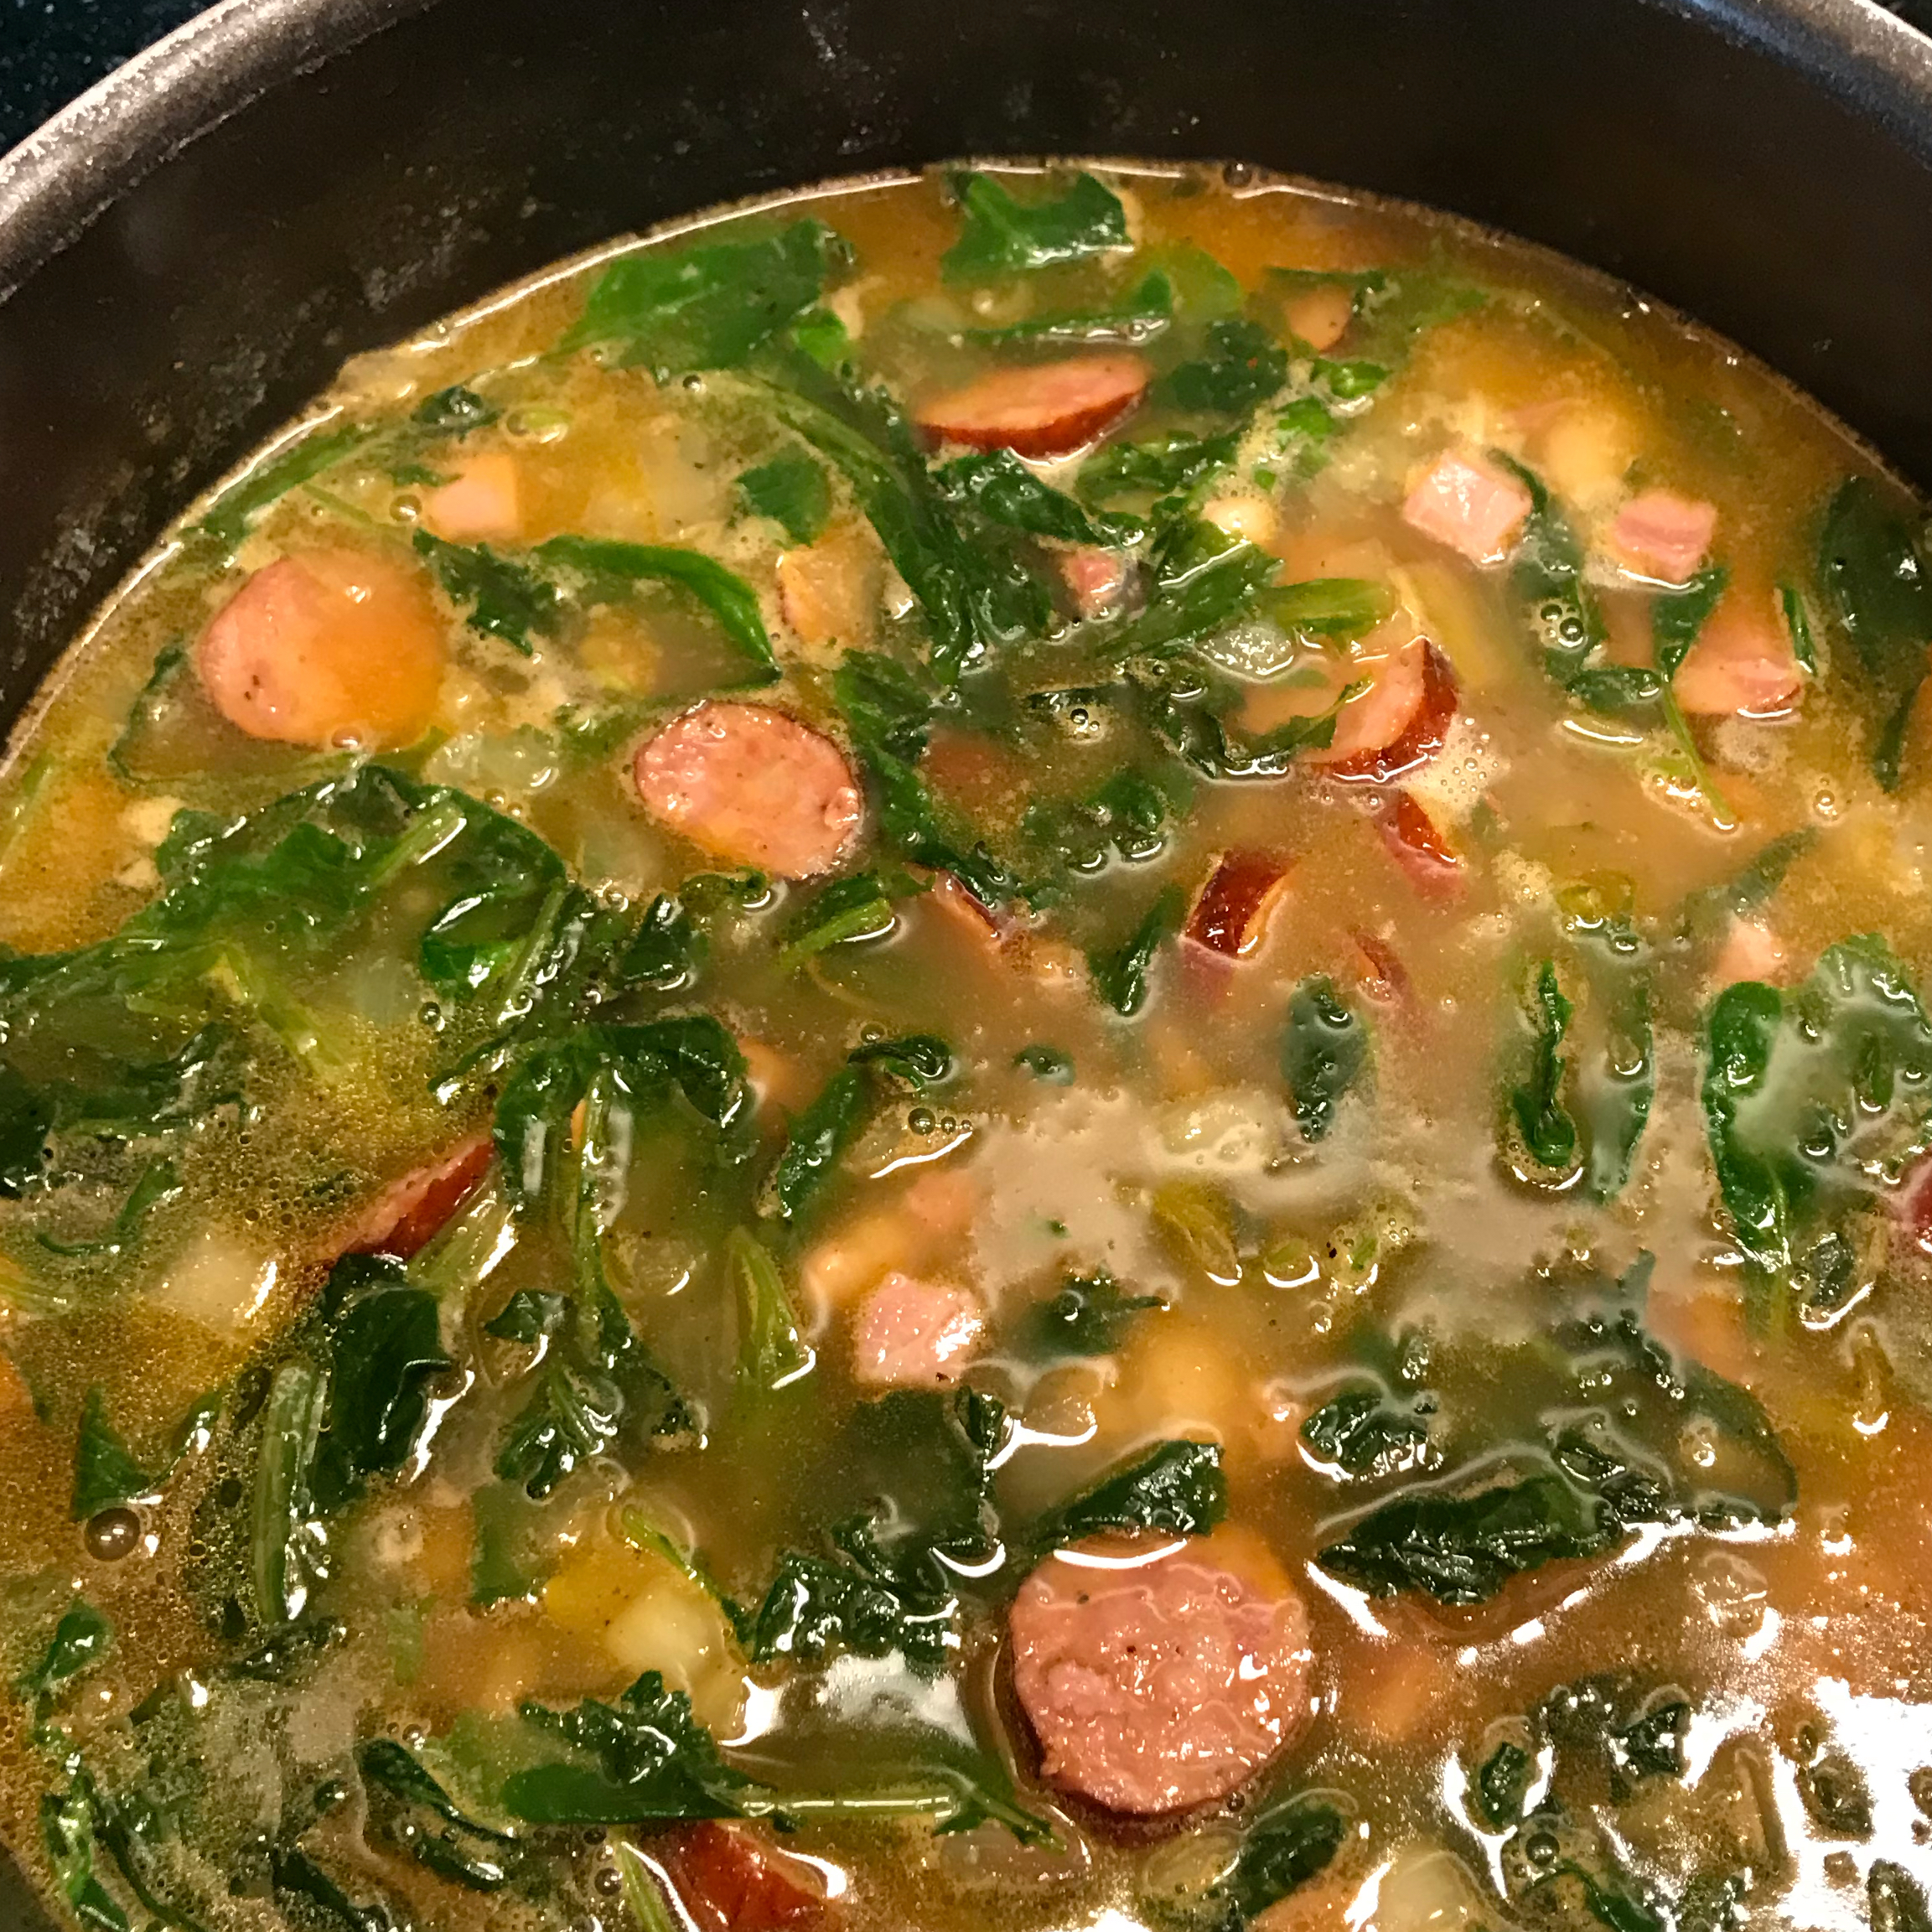 Big Ray's White Bean, Kale, and Kielbasa Soup david wood